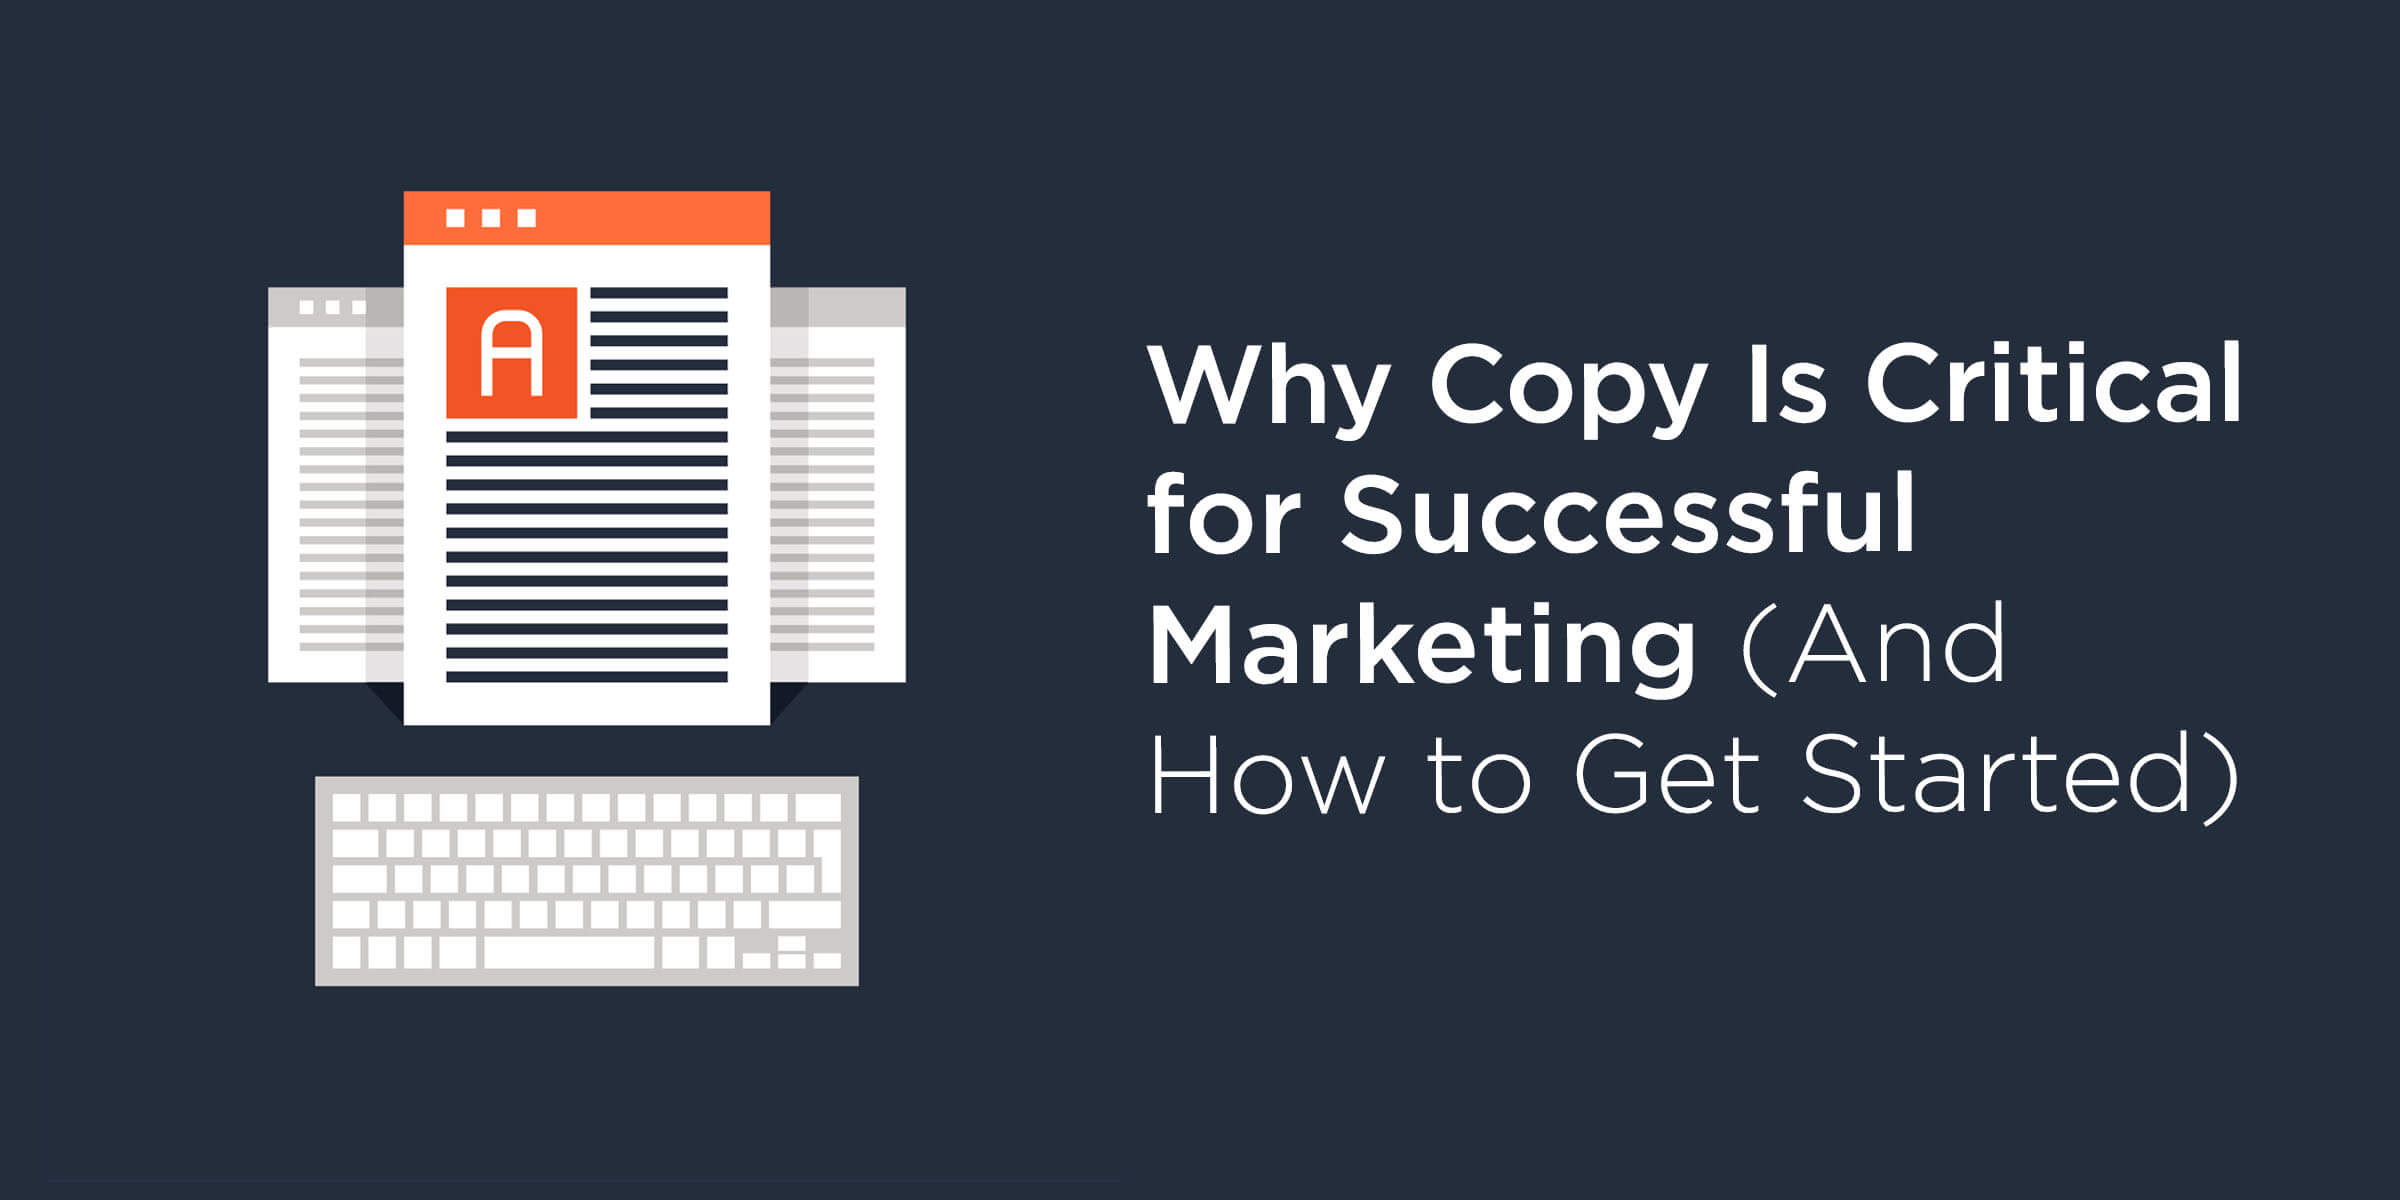 Why Copy Is Critical for Successful Marketing – McBreen Marketing Fort Collins, CO